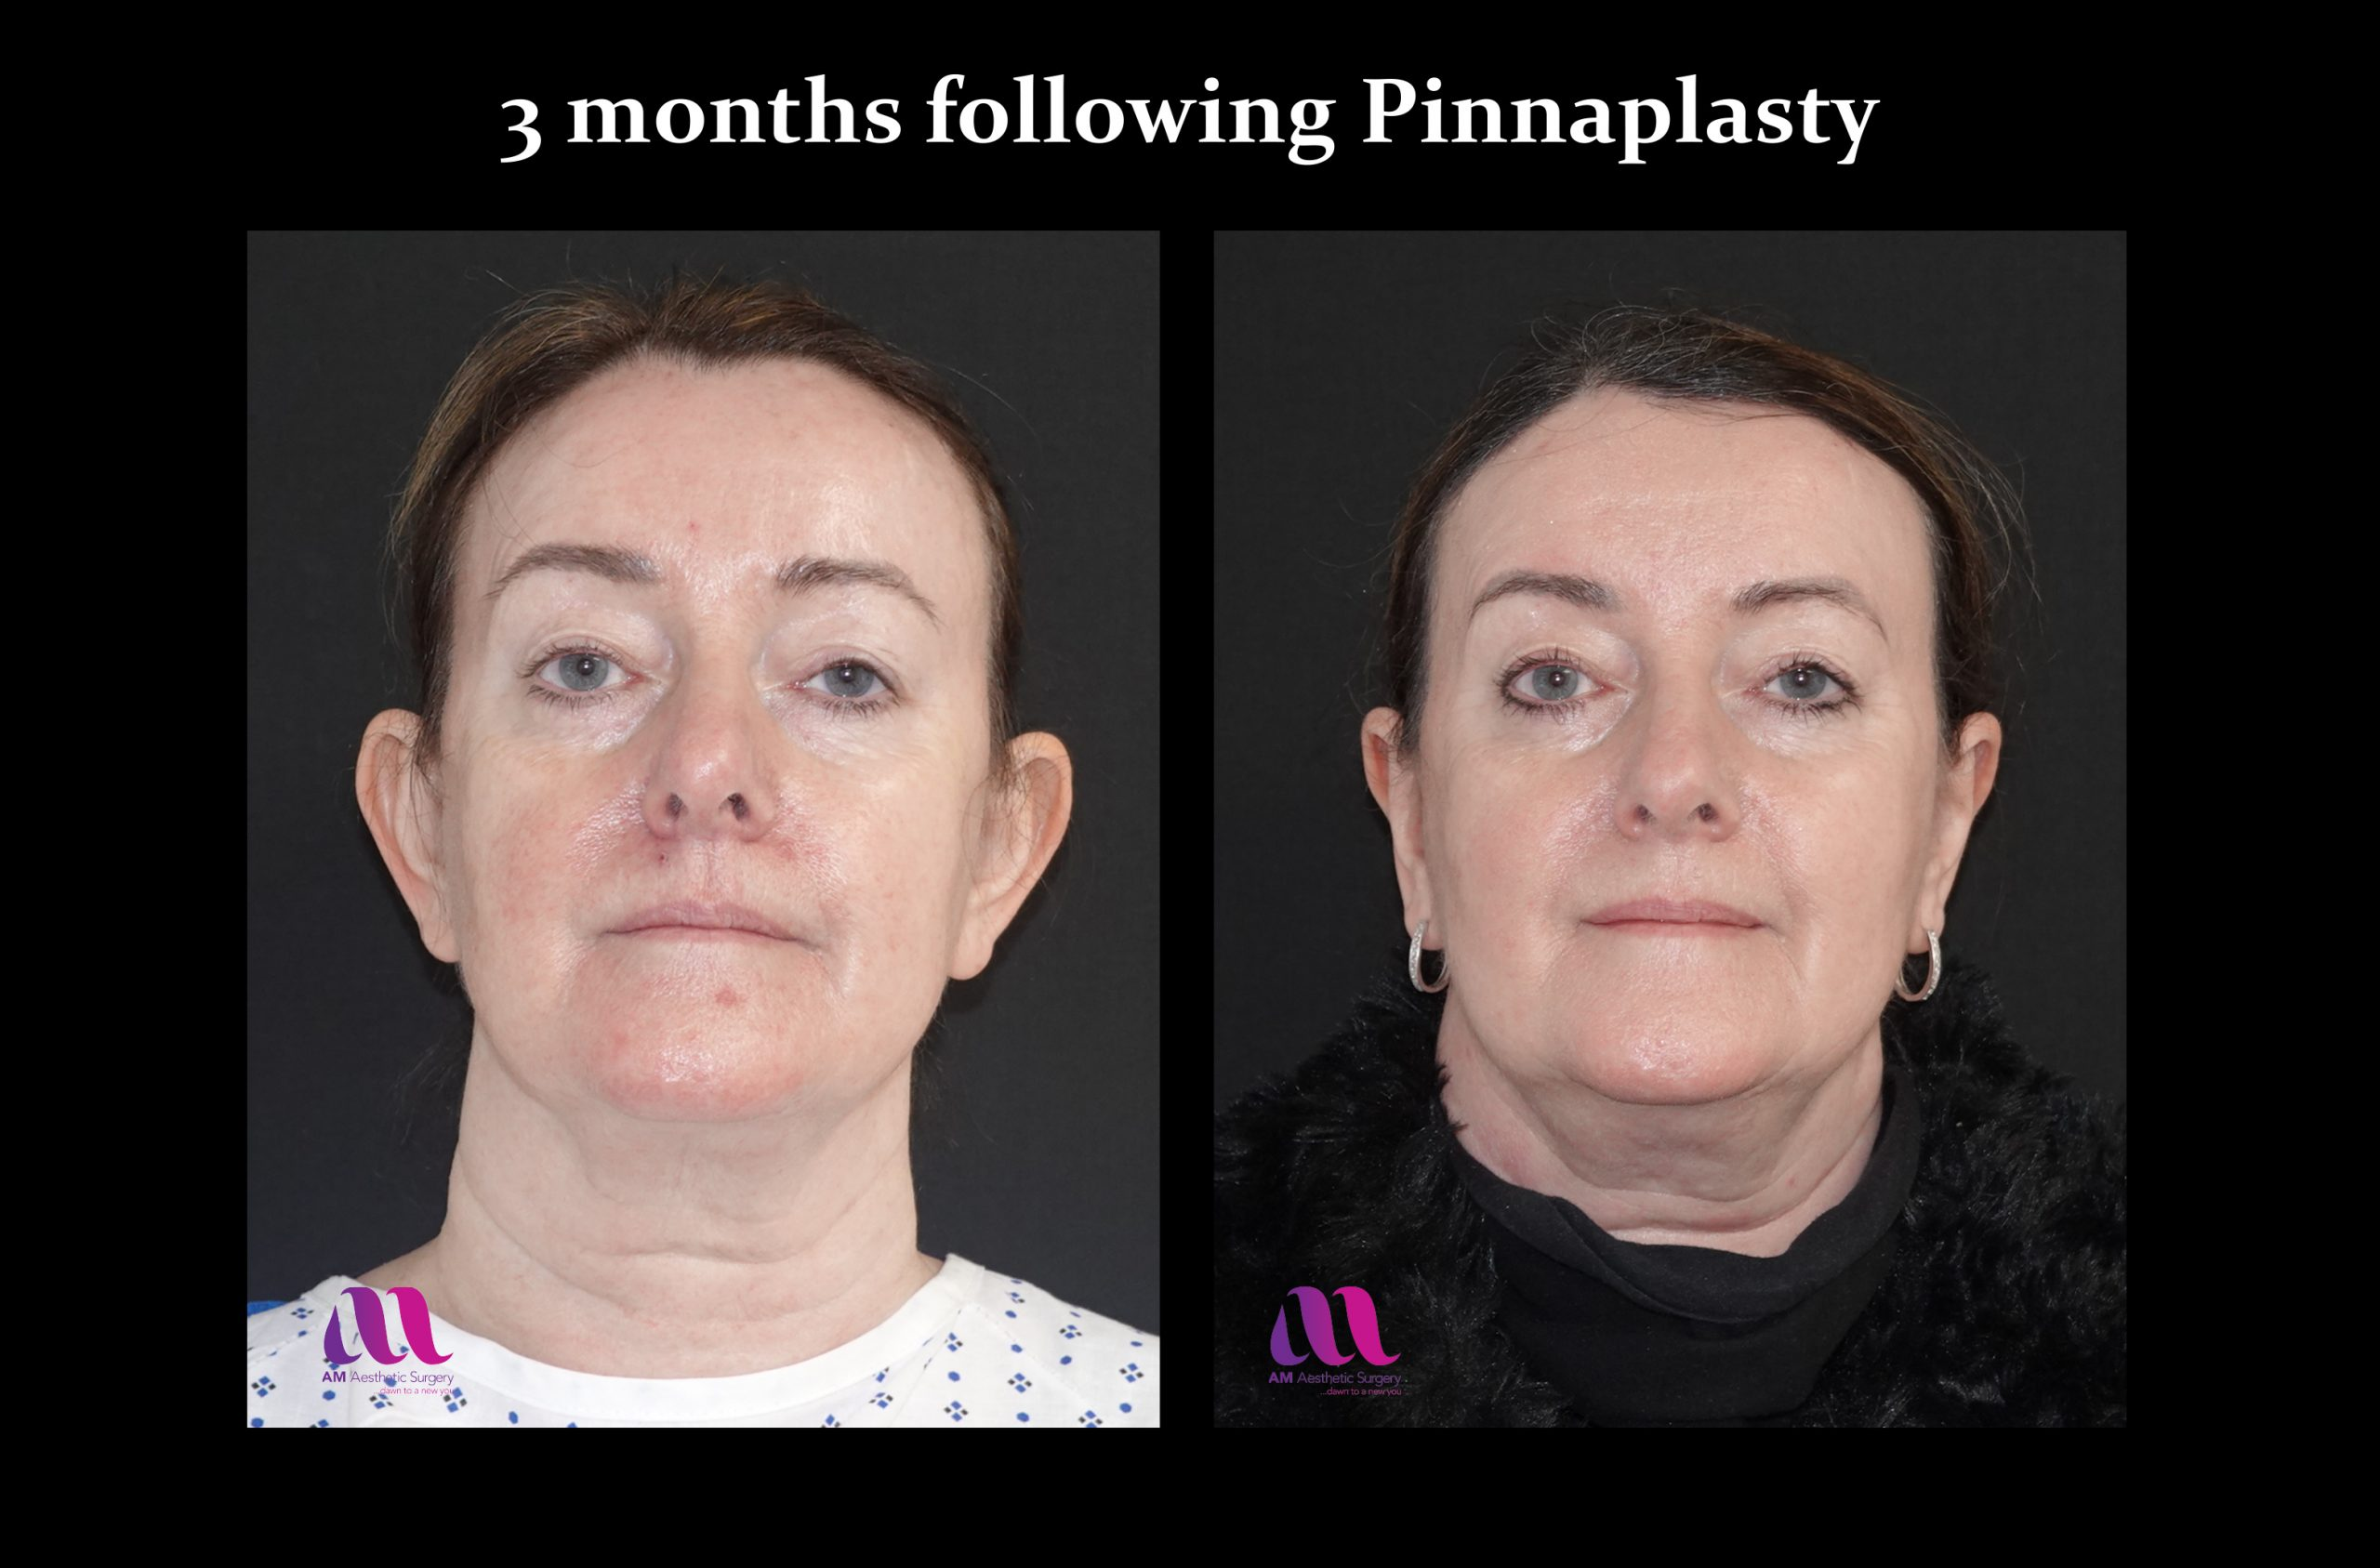 Pinnaplasty2a